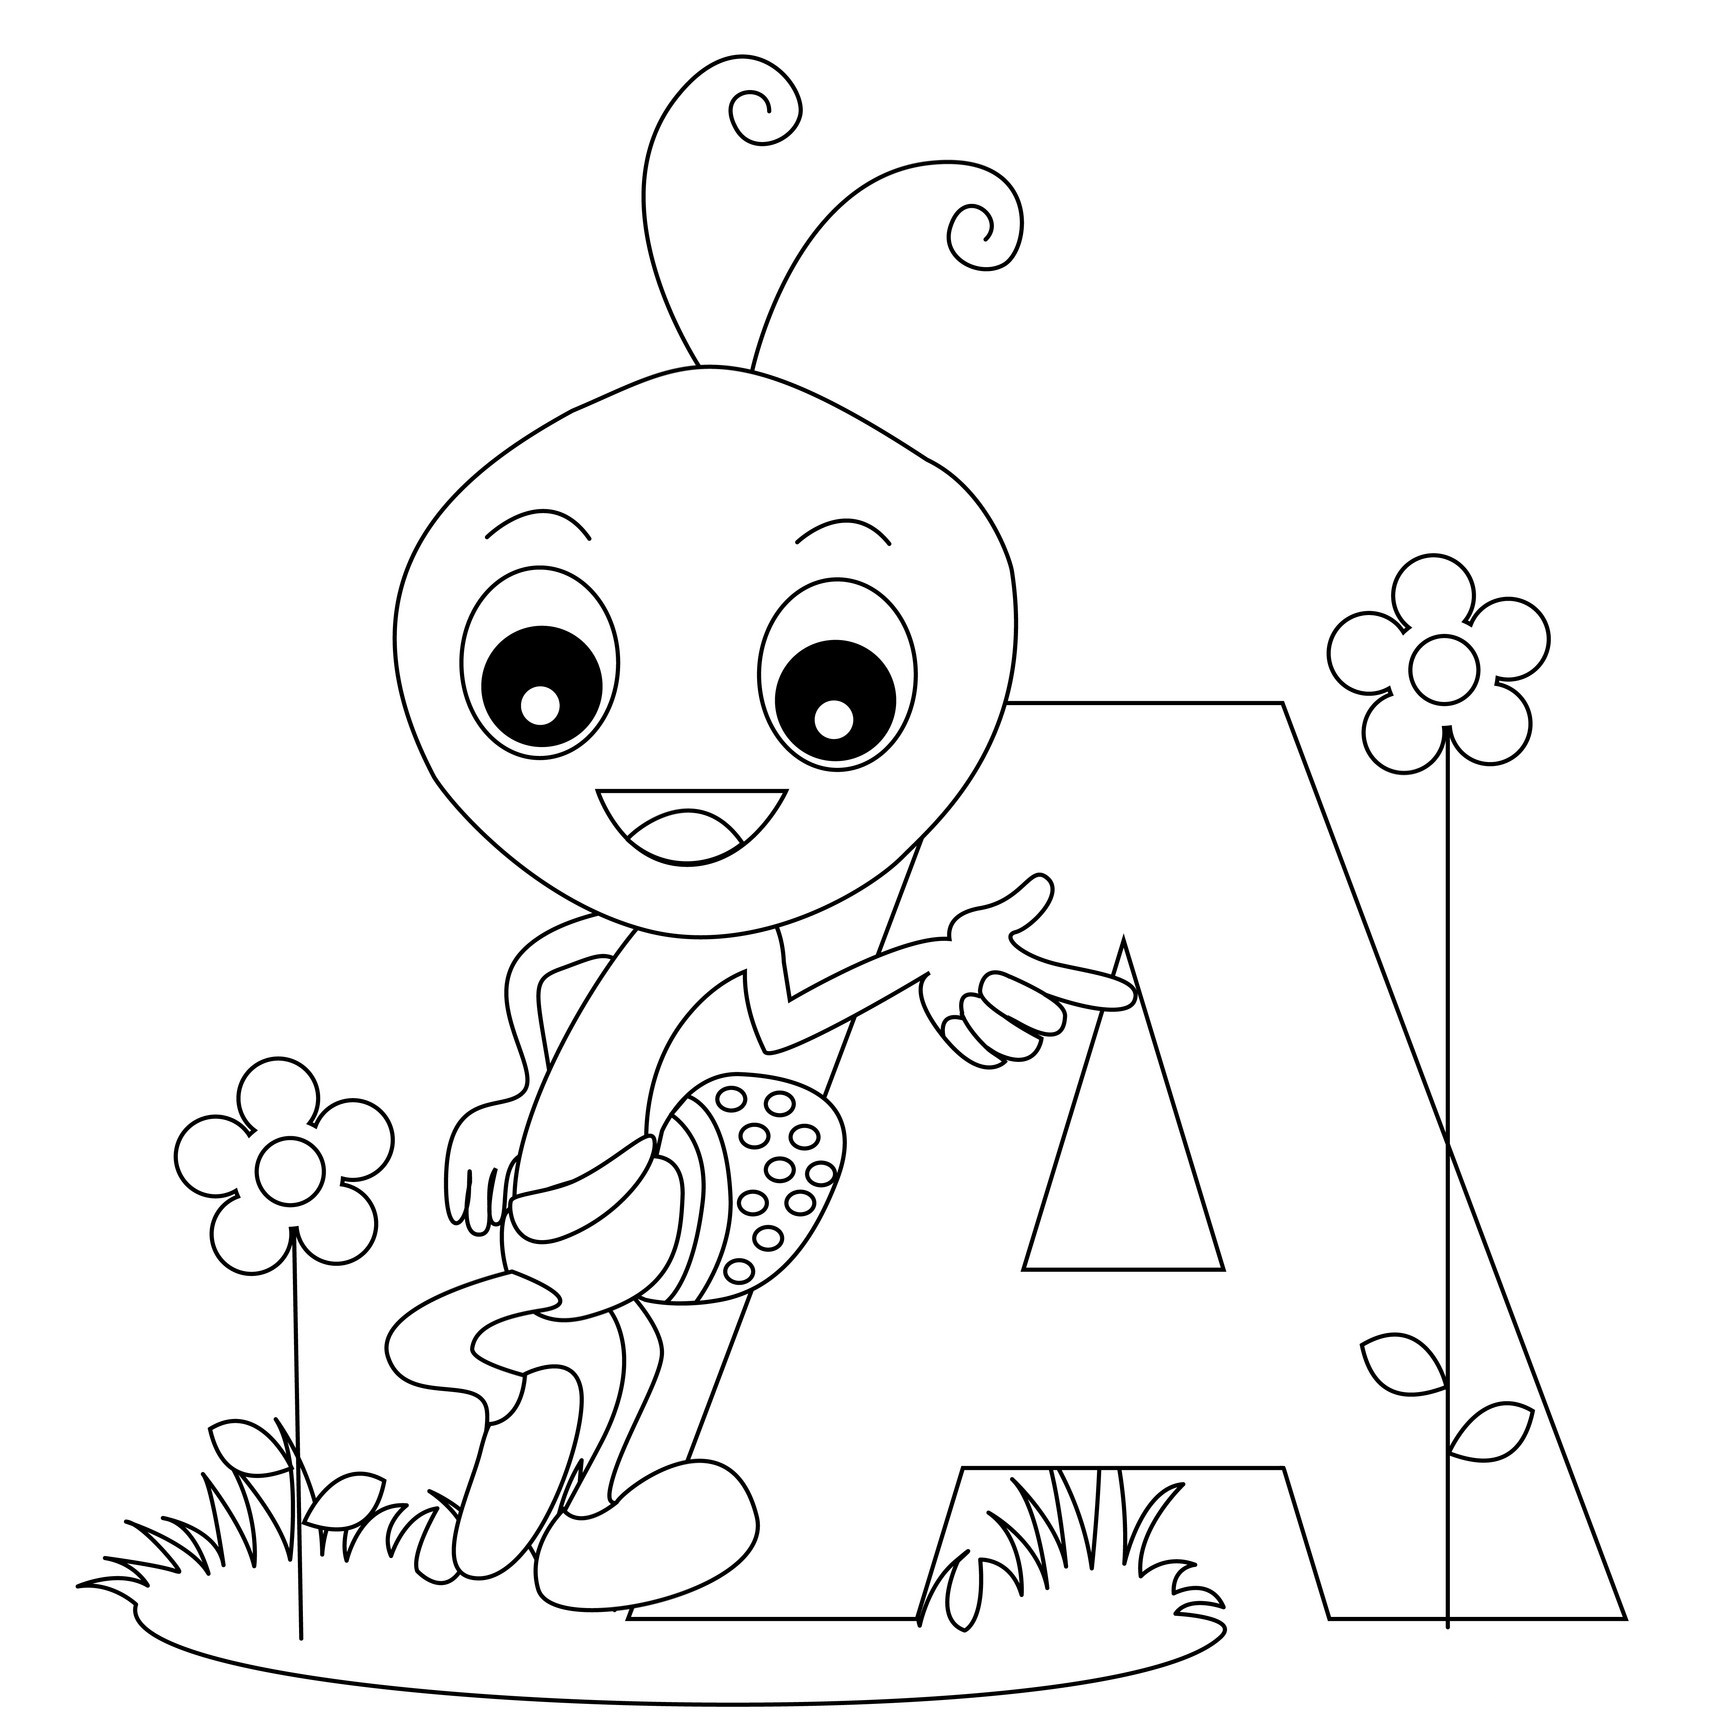 colouring pictures of alphabets a is for apples free coloring pages for kids printable of alphabets pictures colouring